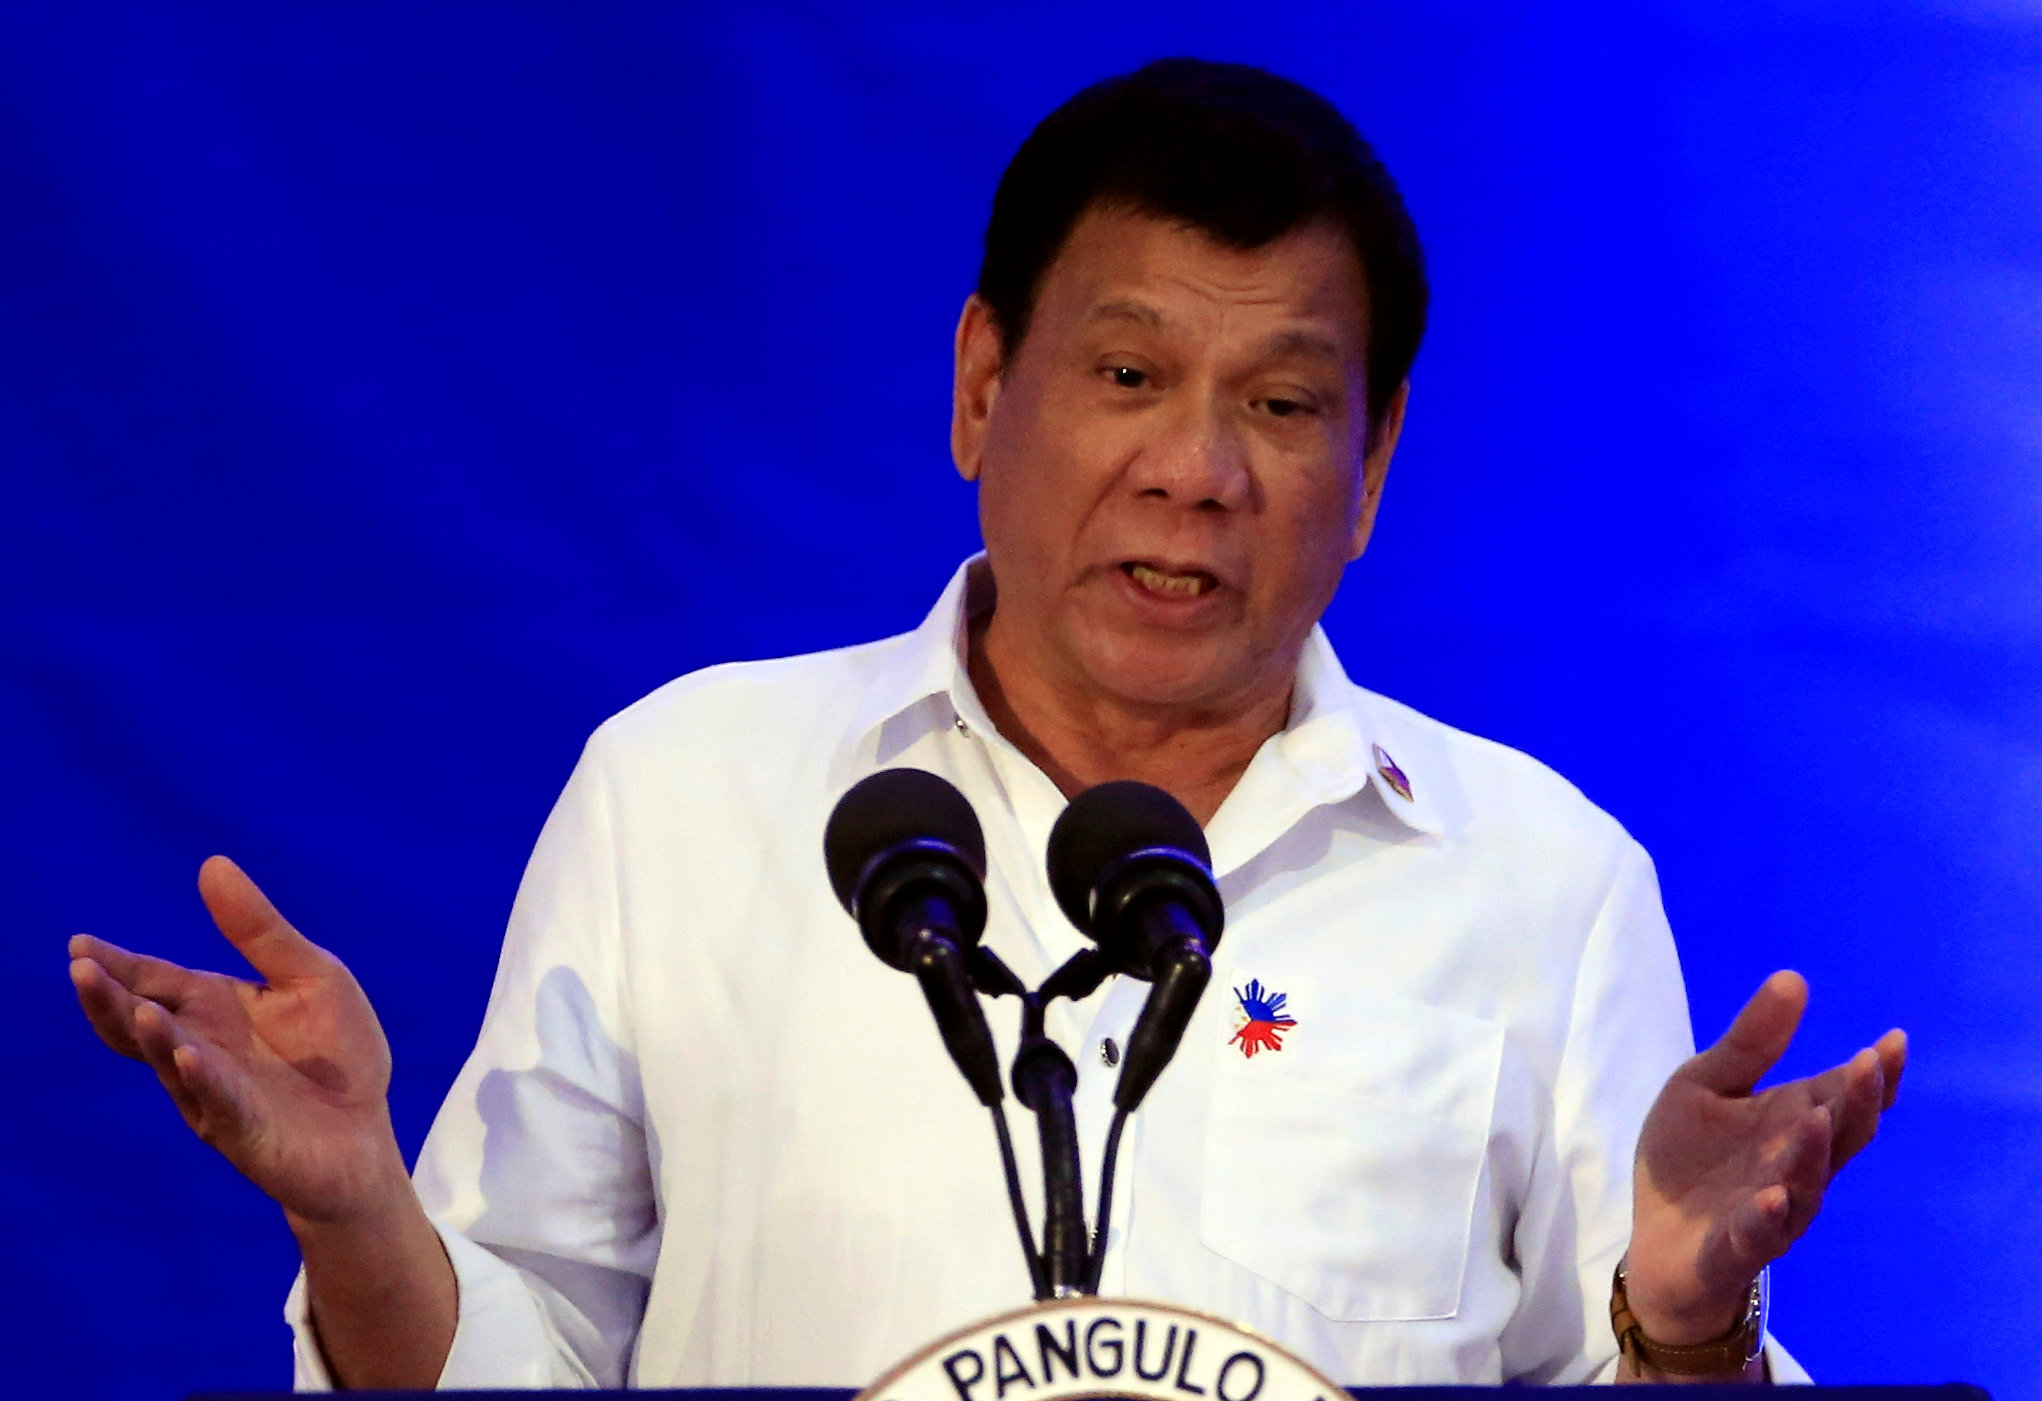 Philippine President Rodrigo Duterte gestures while delivering a speech during the 80th National Bureau of Investigation (NBI) founding anniversary at the NBI headquarters in metro Ma